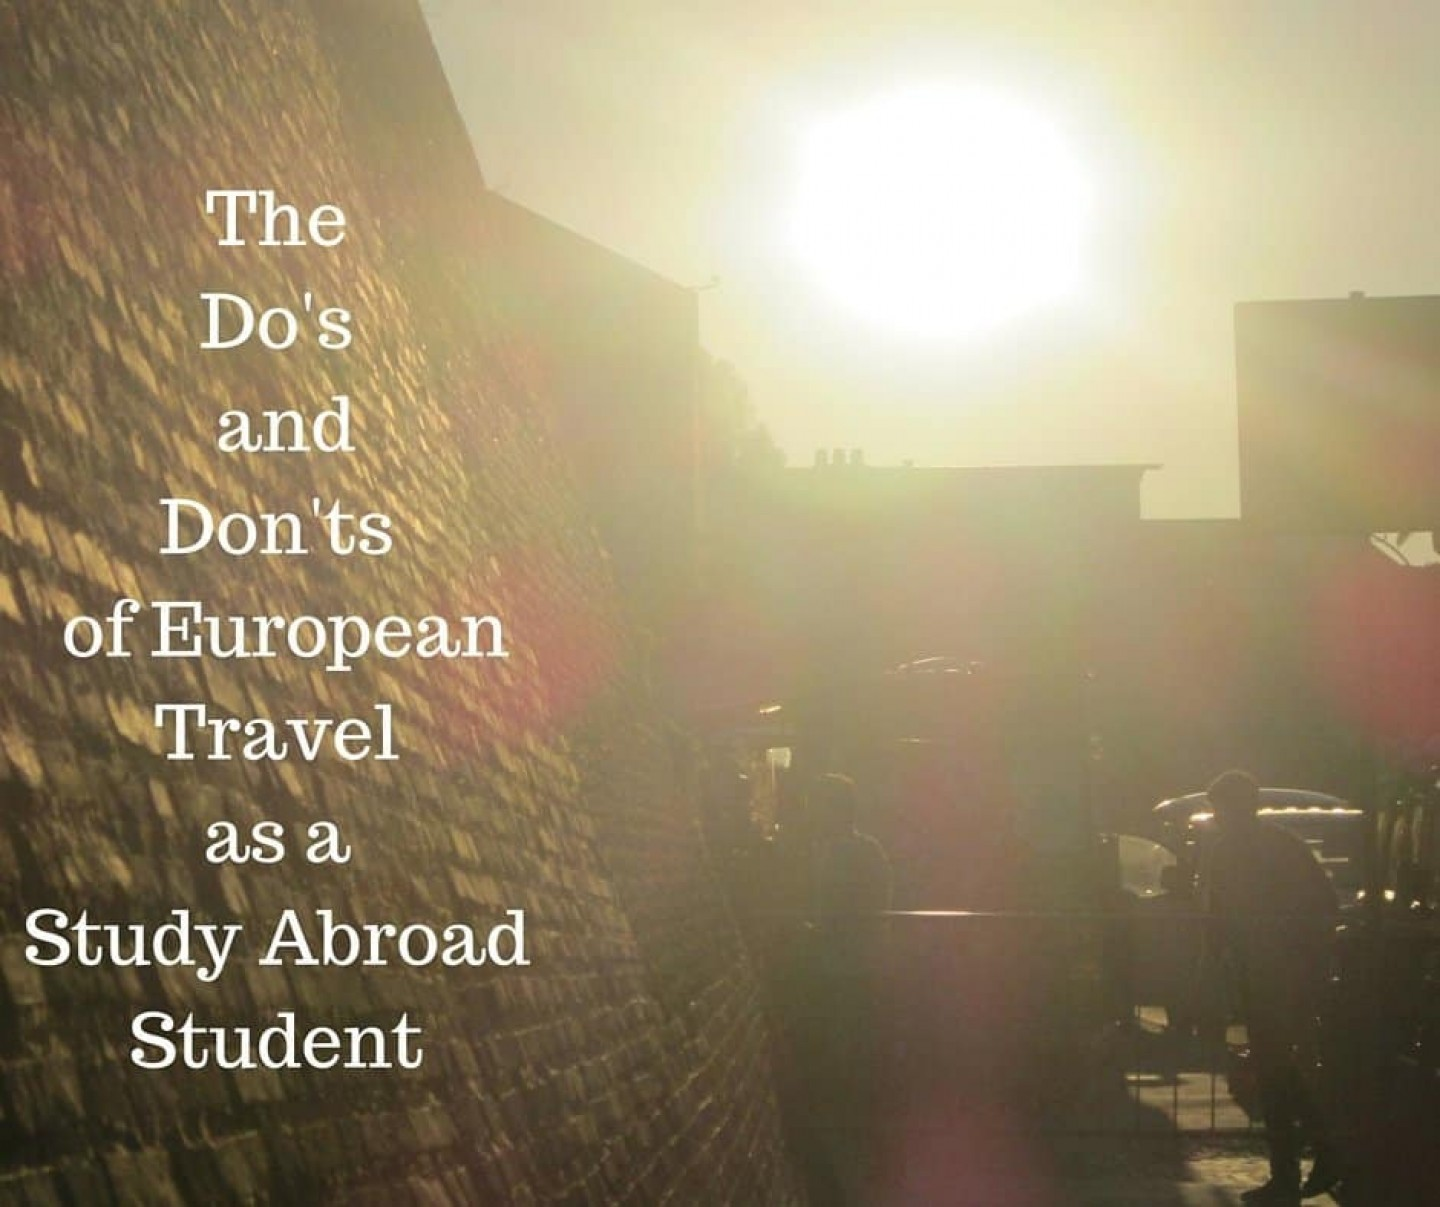 The Do's and Don'ts of European Travel as a Study Abroad Student